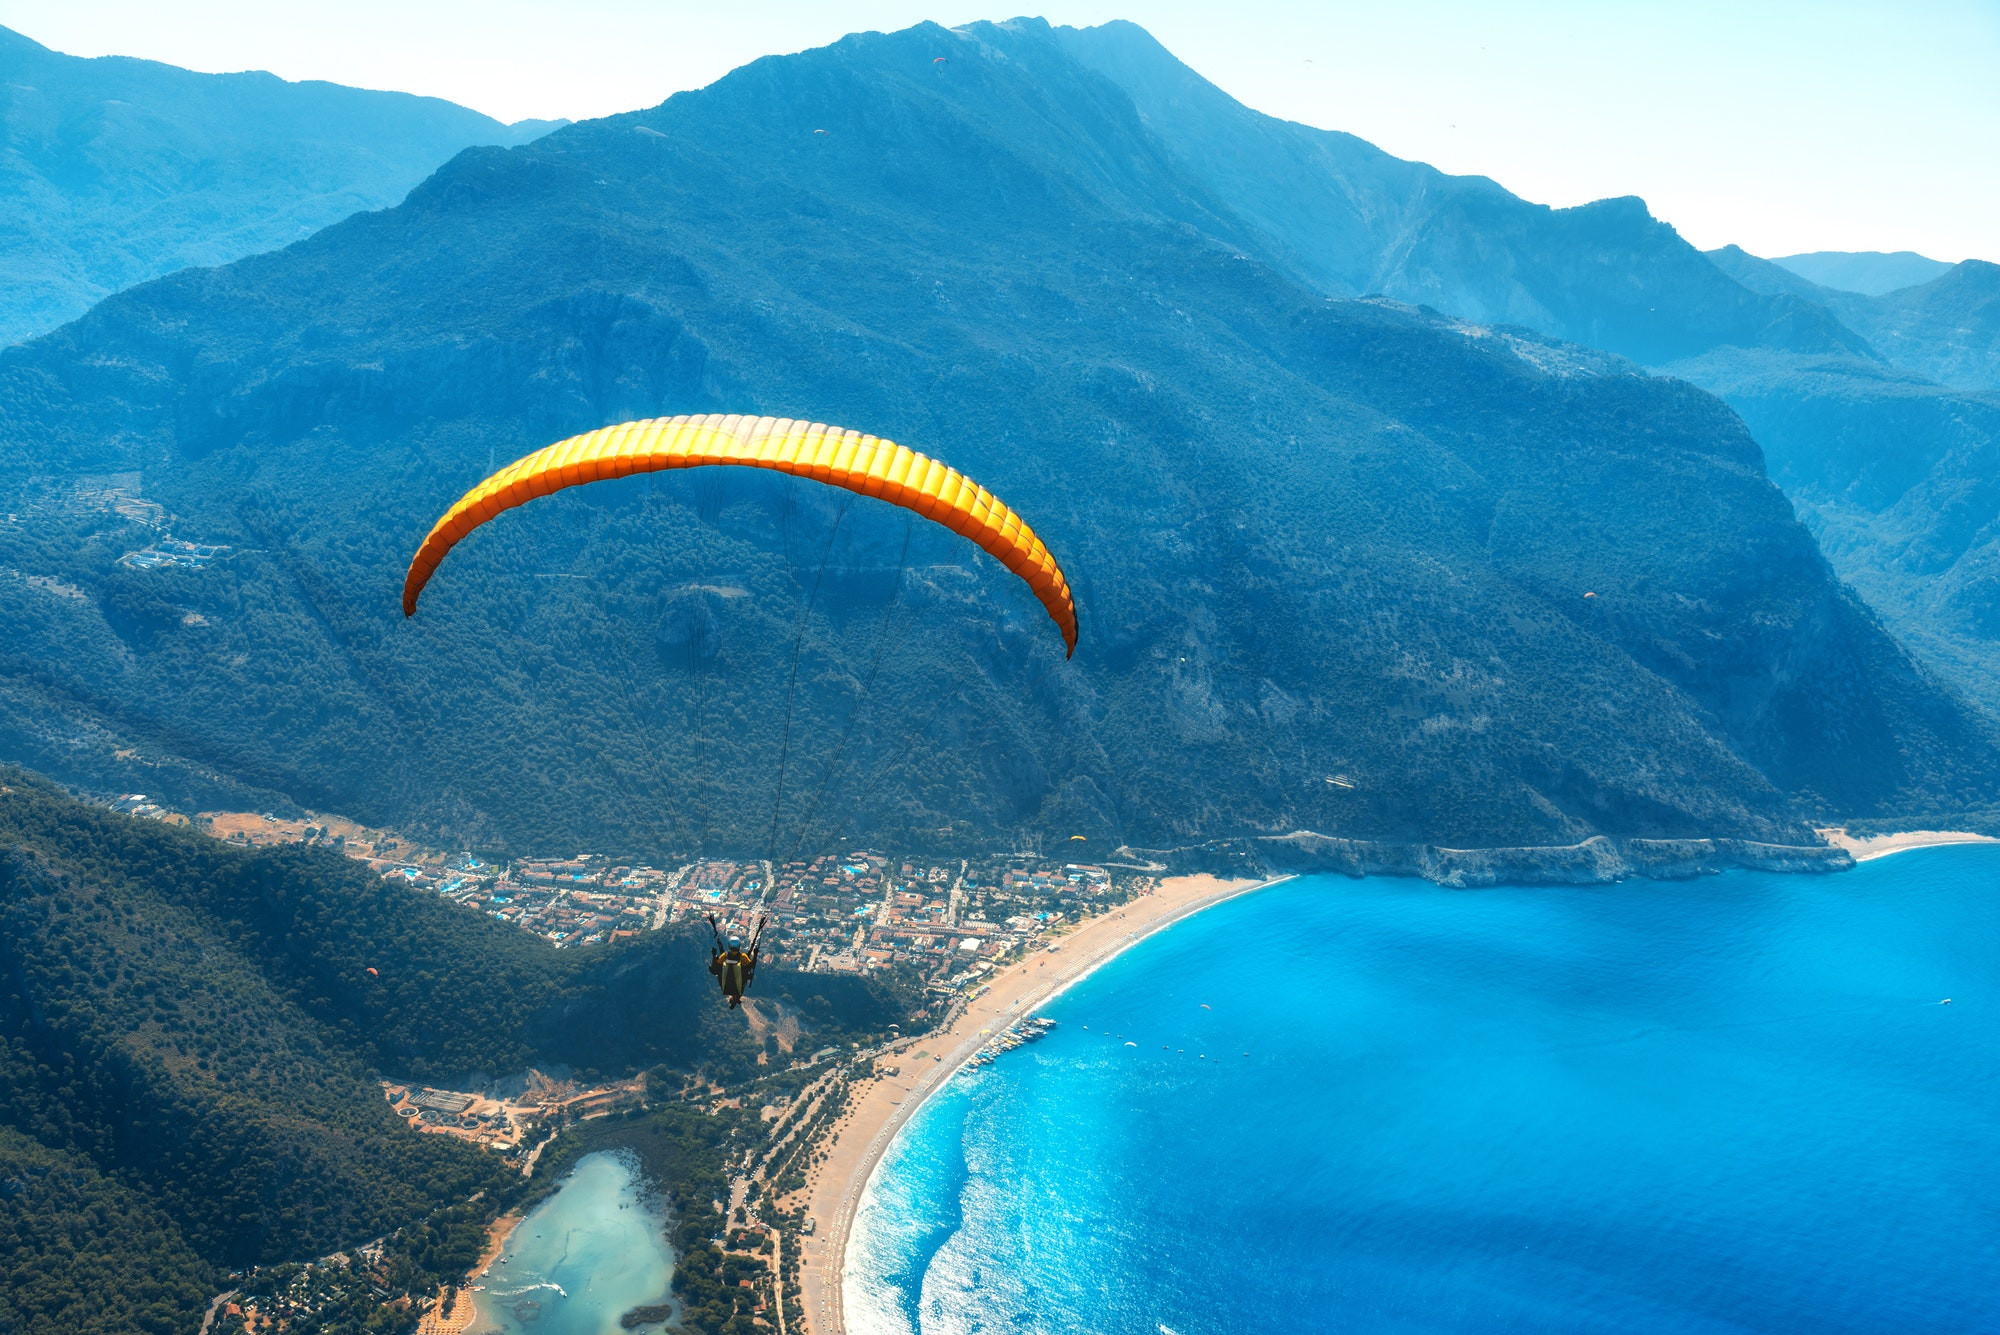 Paraglider tandem flying over the sea with blue water and mountains